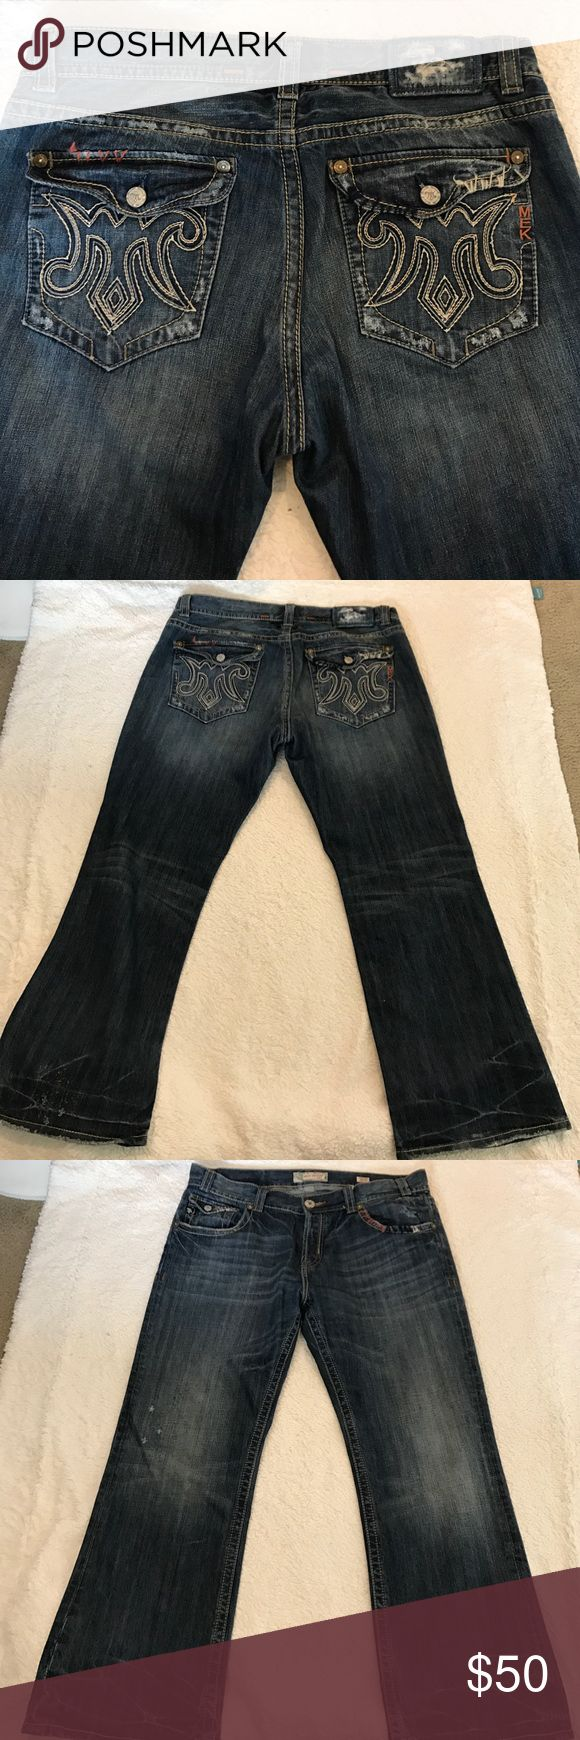 Mel Denim Embedded Distress Bootcut Jeans Size 40 Excellent condition. Mek Denim Portland men's embedded Distress Button fly Bootcut Jeans. 100% cotton. Size 40. Waist laying flat 21'. Rise 12'. Inseam 31'. Please check some of my items you might find what you are looking for in good quality and very affordable price MEK Jeans Bootcut